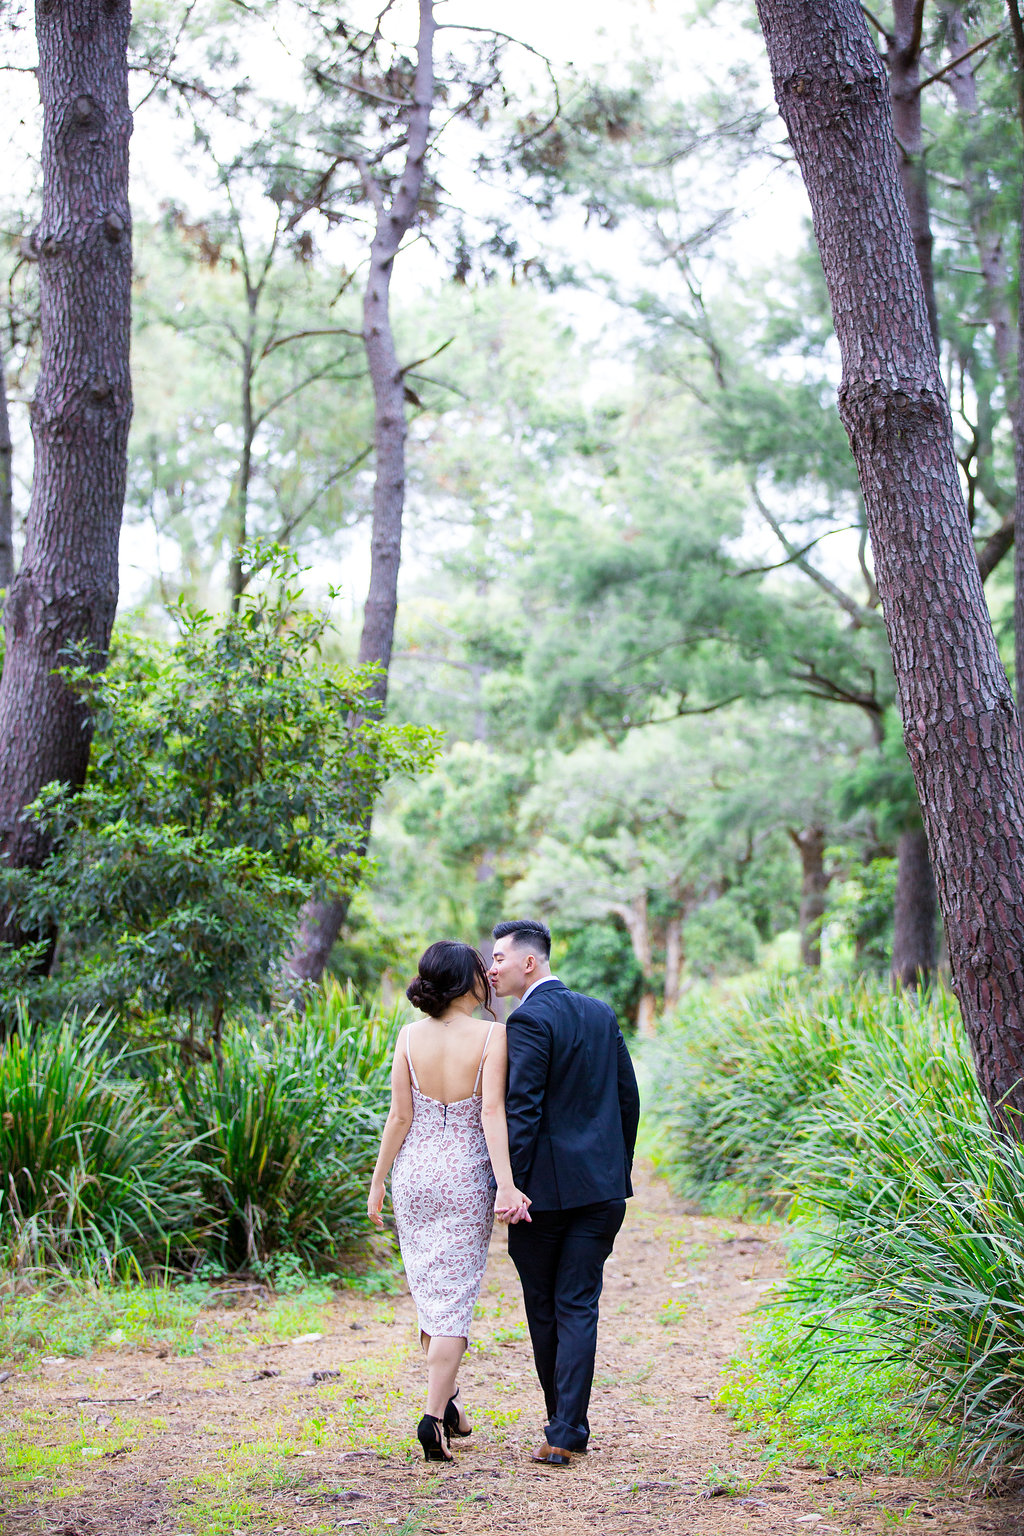 Pre-Wedding Couples Photo Session - Centennial Park - Sydney Wedding Photographer - Jennifer Lam Photography